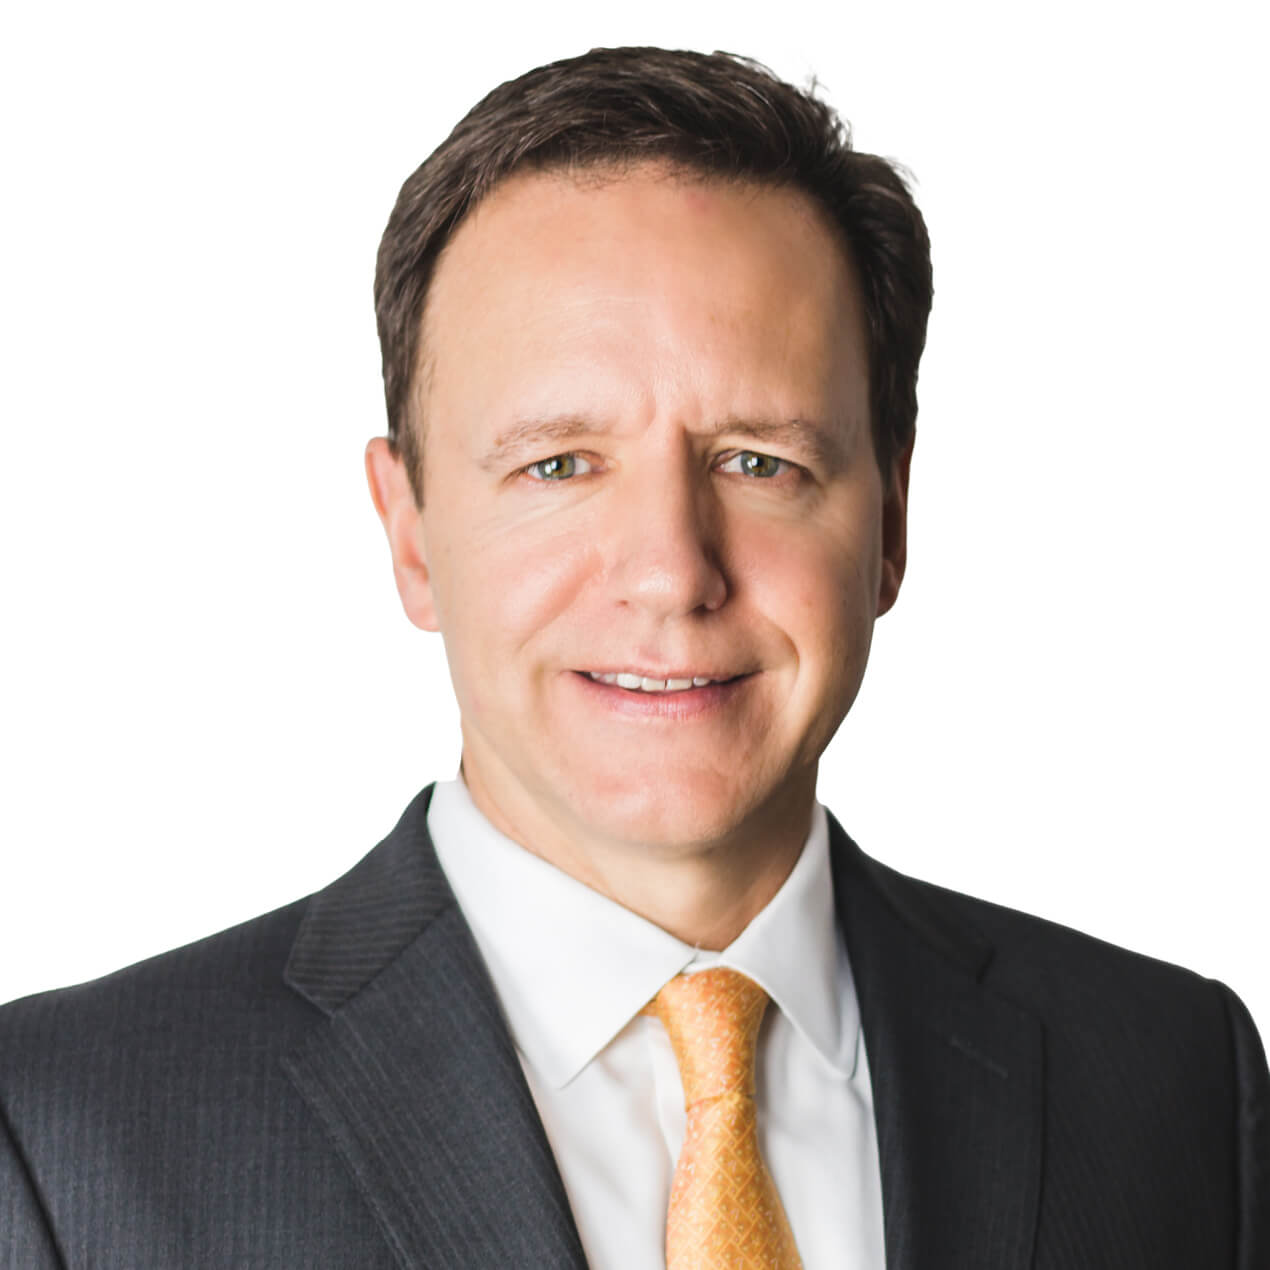 Founding partner Richard Gurak featured in Amata Law Office Suites blog post